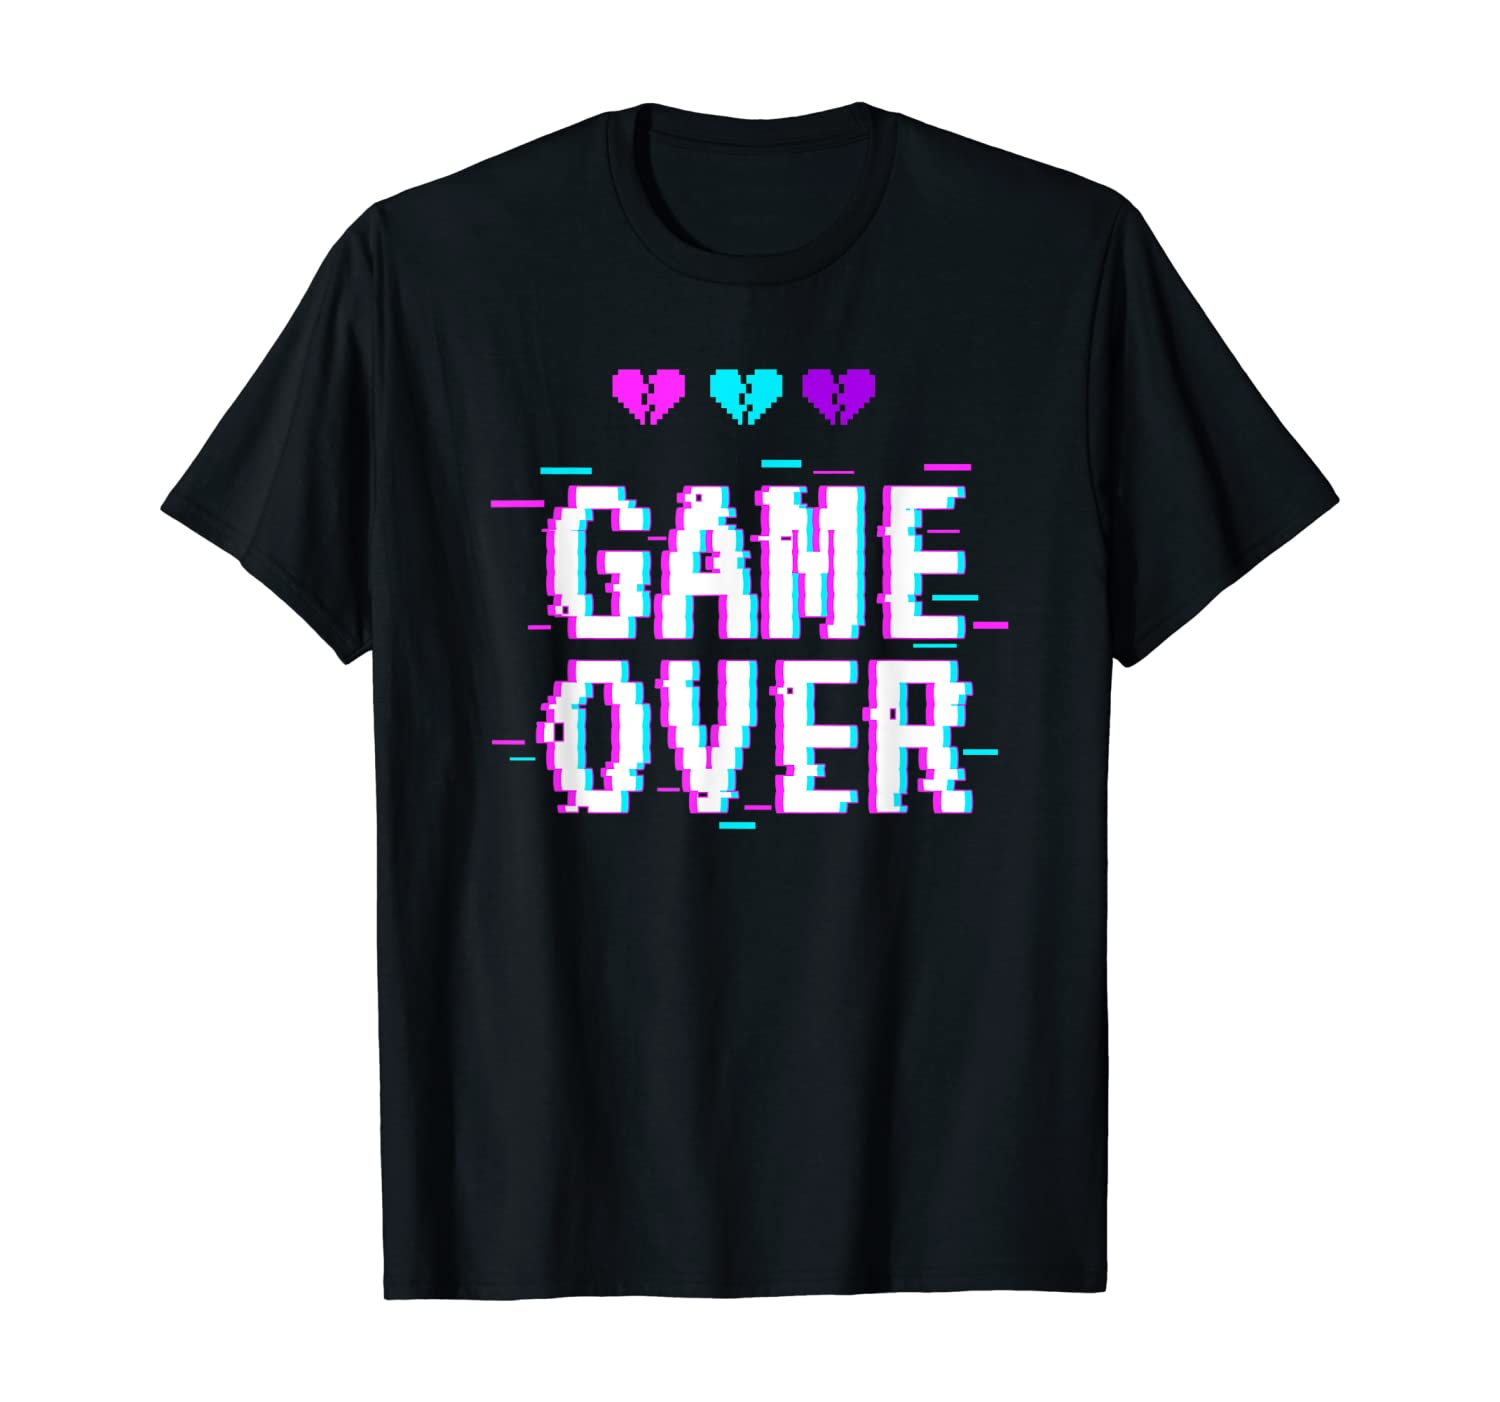 Yami Kawaii Game Over Pastel Goth Aesthetic Vaporwave T-Shirt